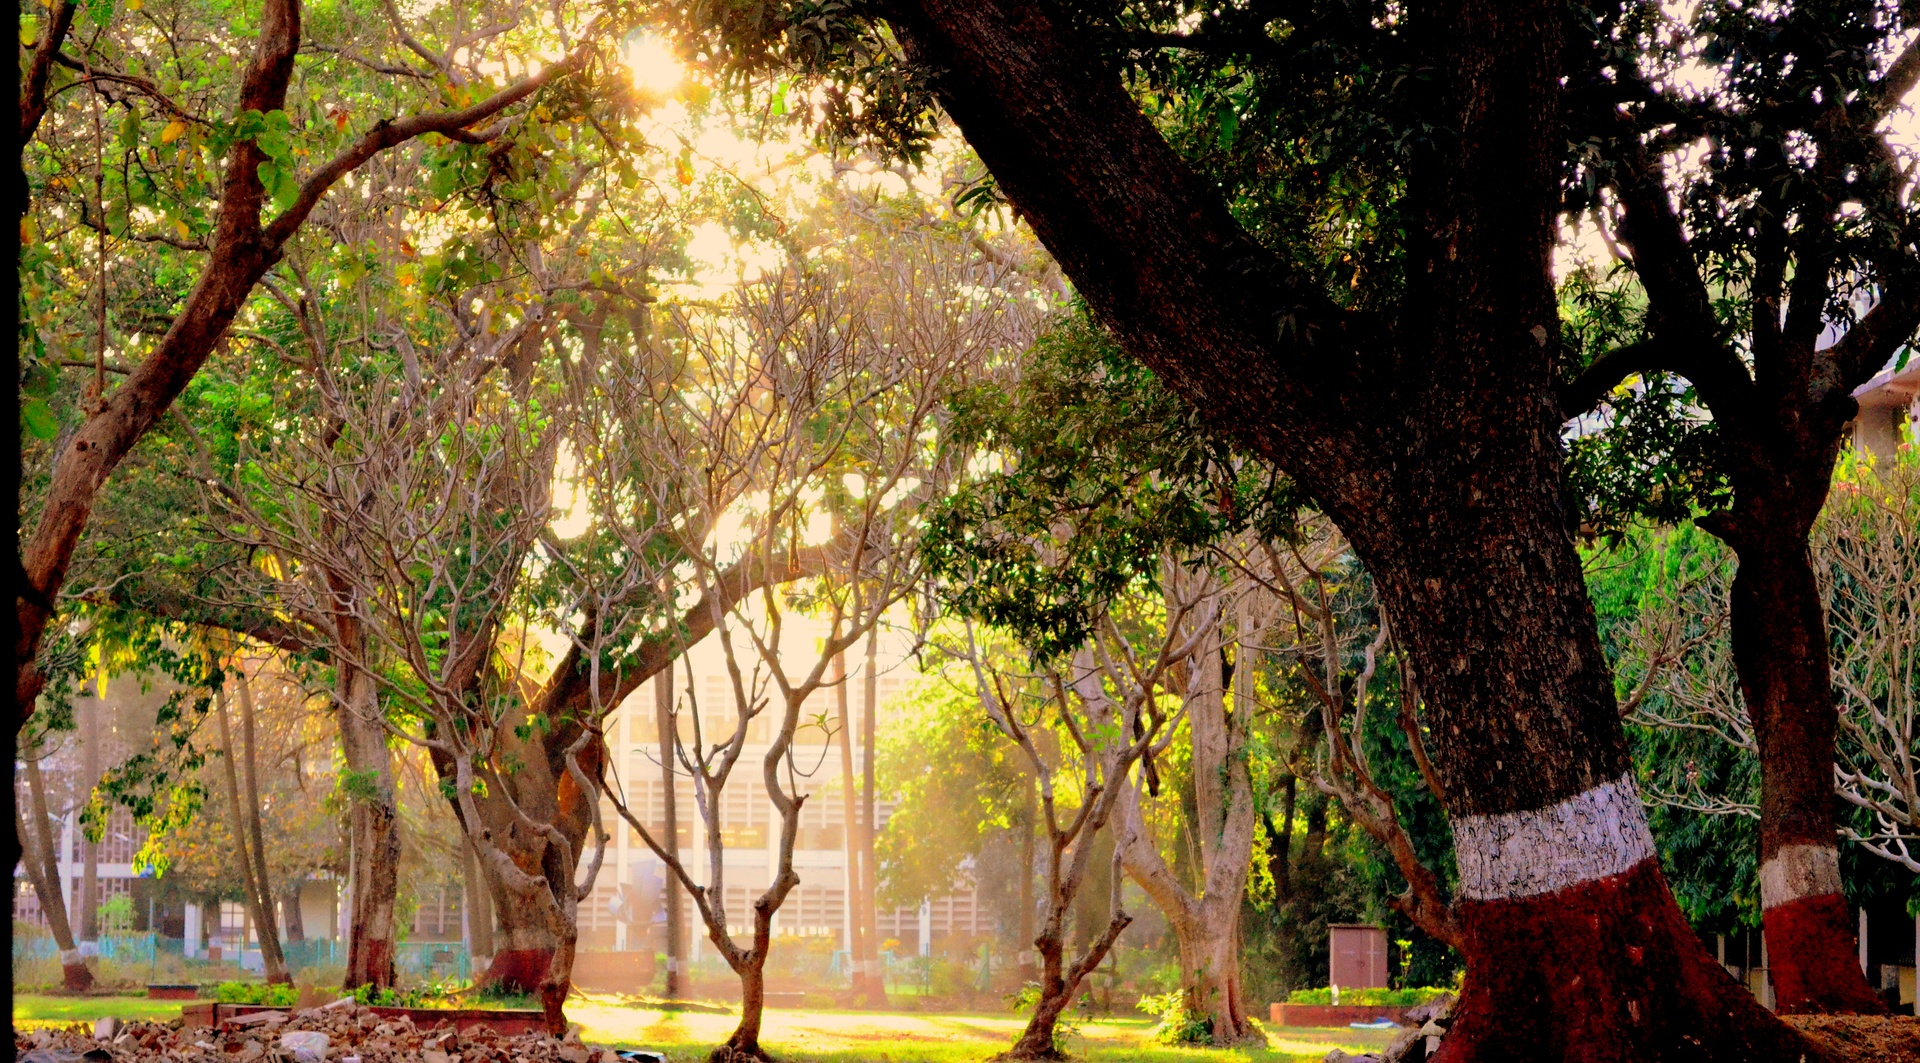 A humble sun in the city is certainly not an easy feat to find.. unless of course you are in IITB..